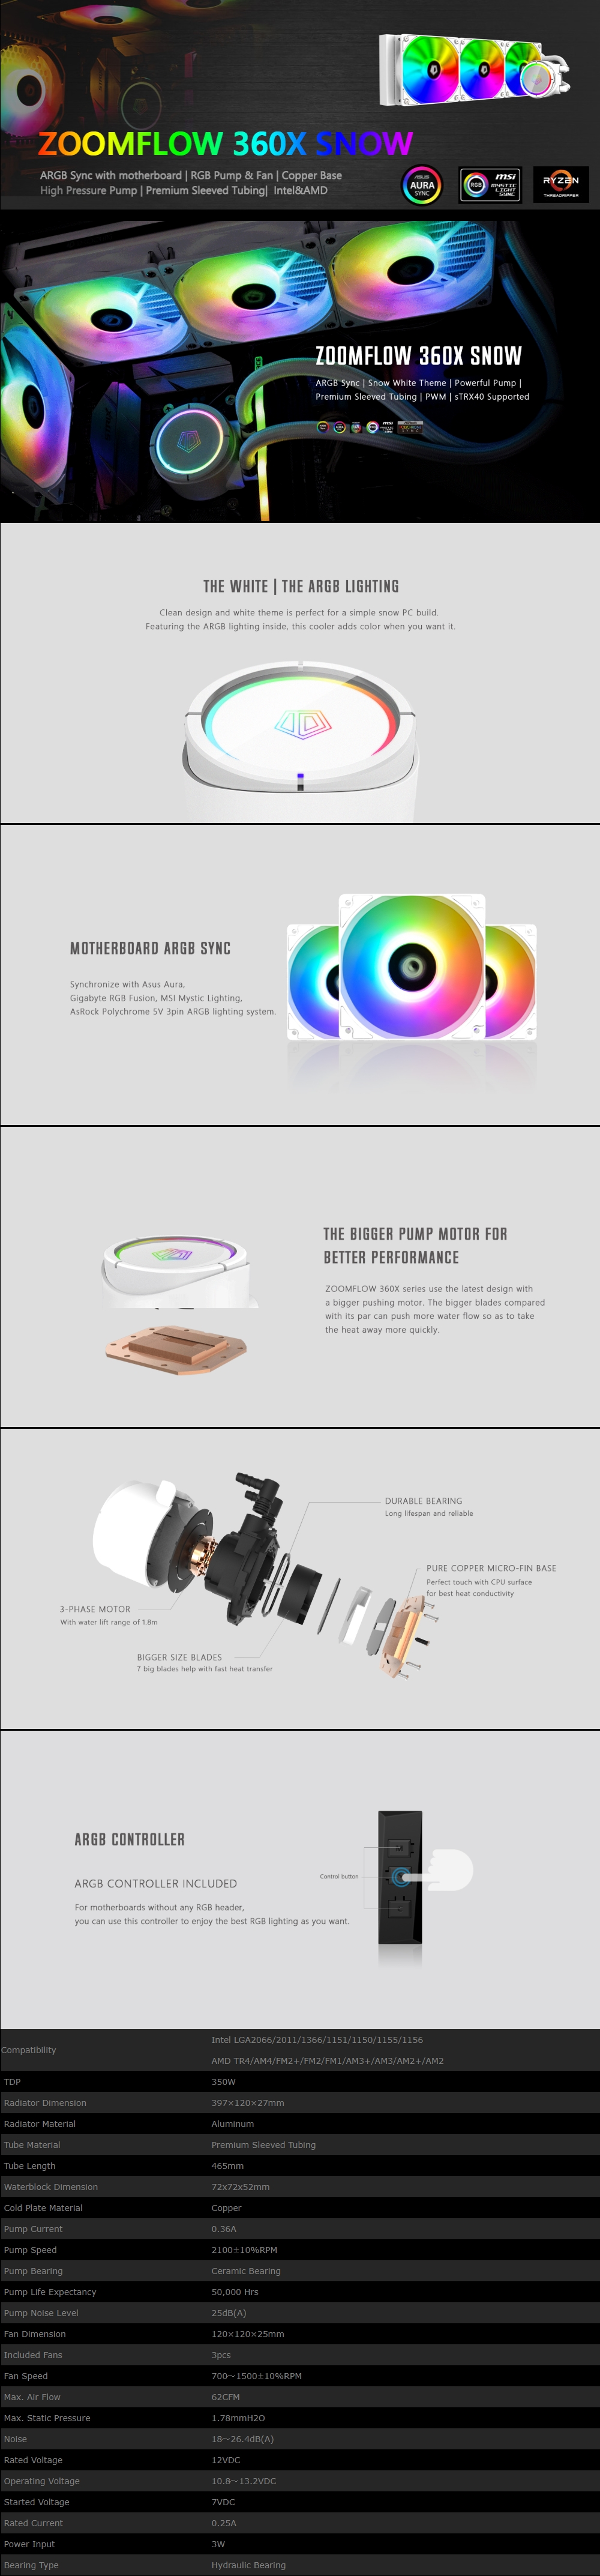 A large marketing image providing additional information about the product ID-COOLING ZoomFlow 360X SNOW RGB AIO CPU Liquid Cooler - Additional alt info not provided